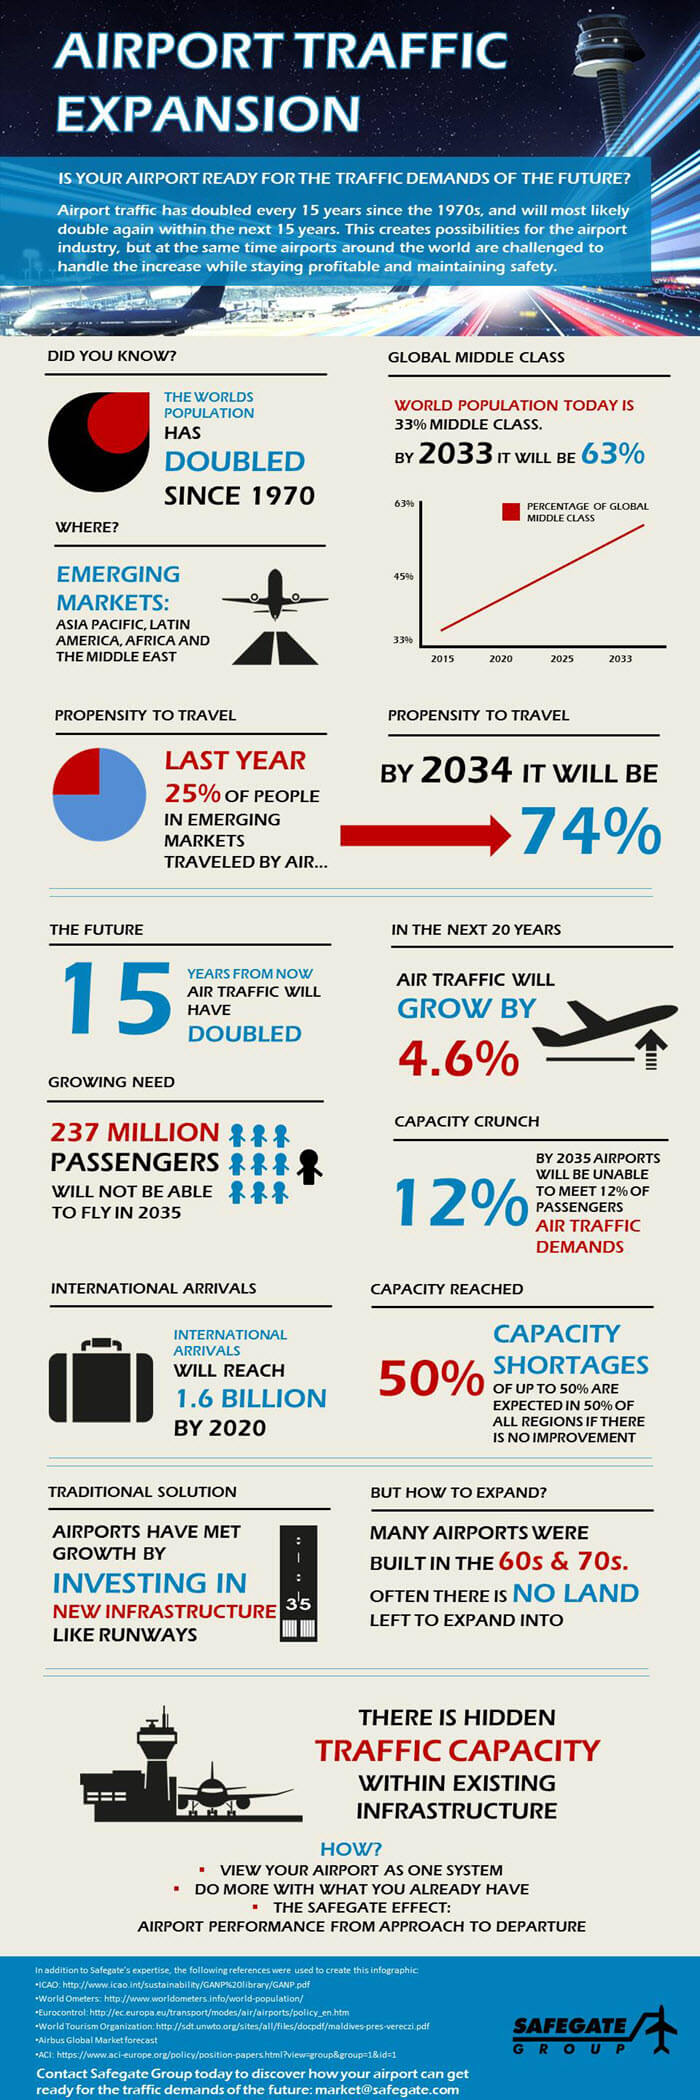 Airport Traffic Expansion Infographic